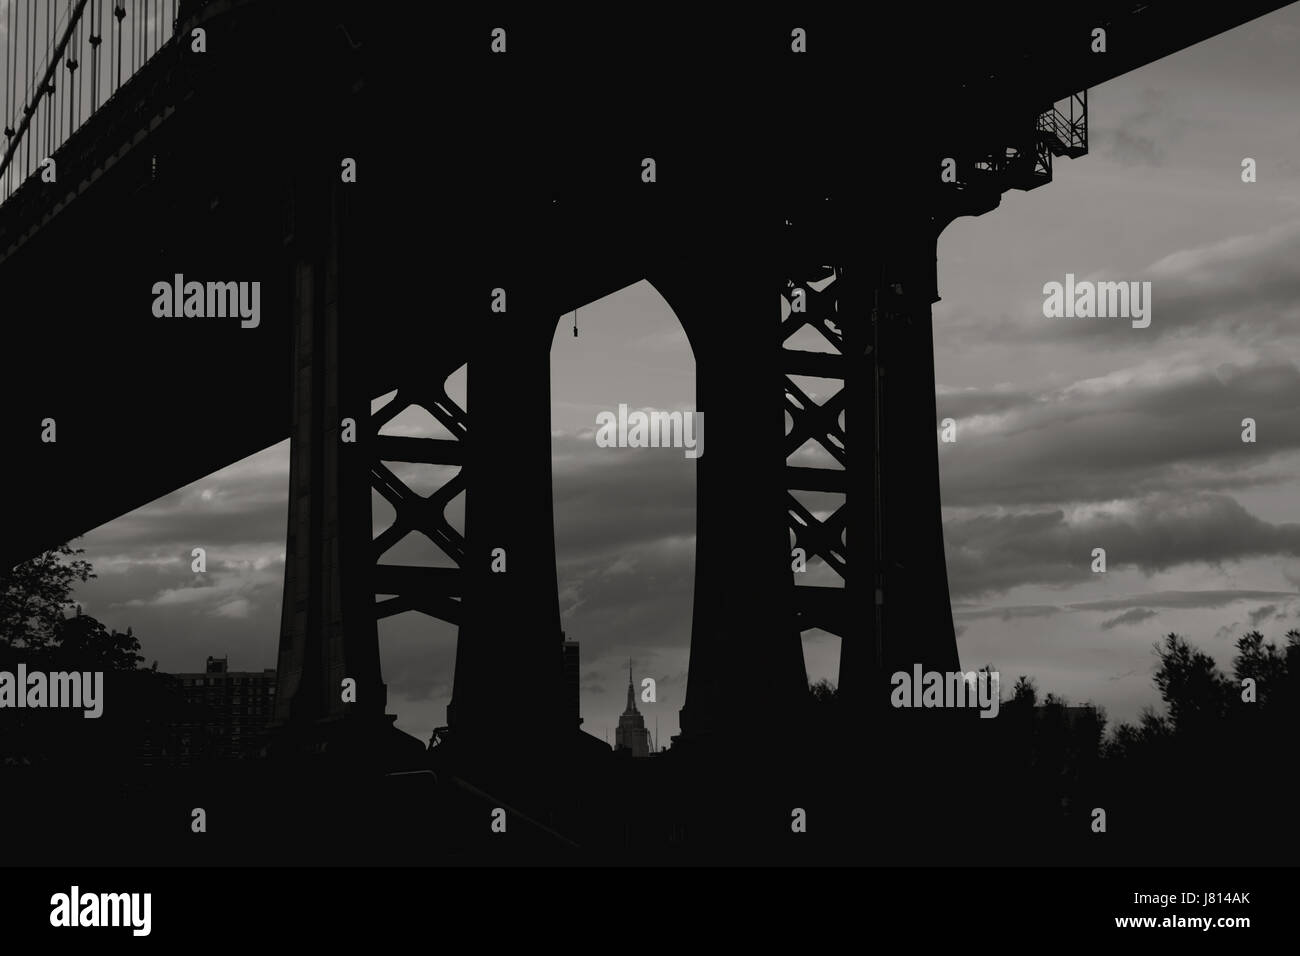 Empire State Building seen through the supporting pier legs of the Manhattan Bridge from DUMBO in Brooklyn, New Stock Photo